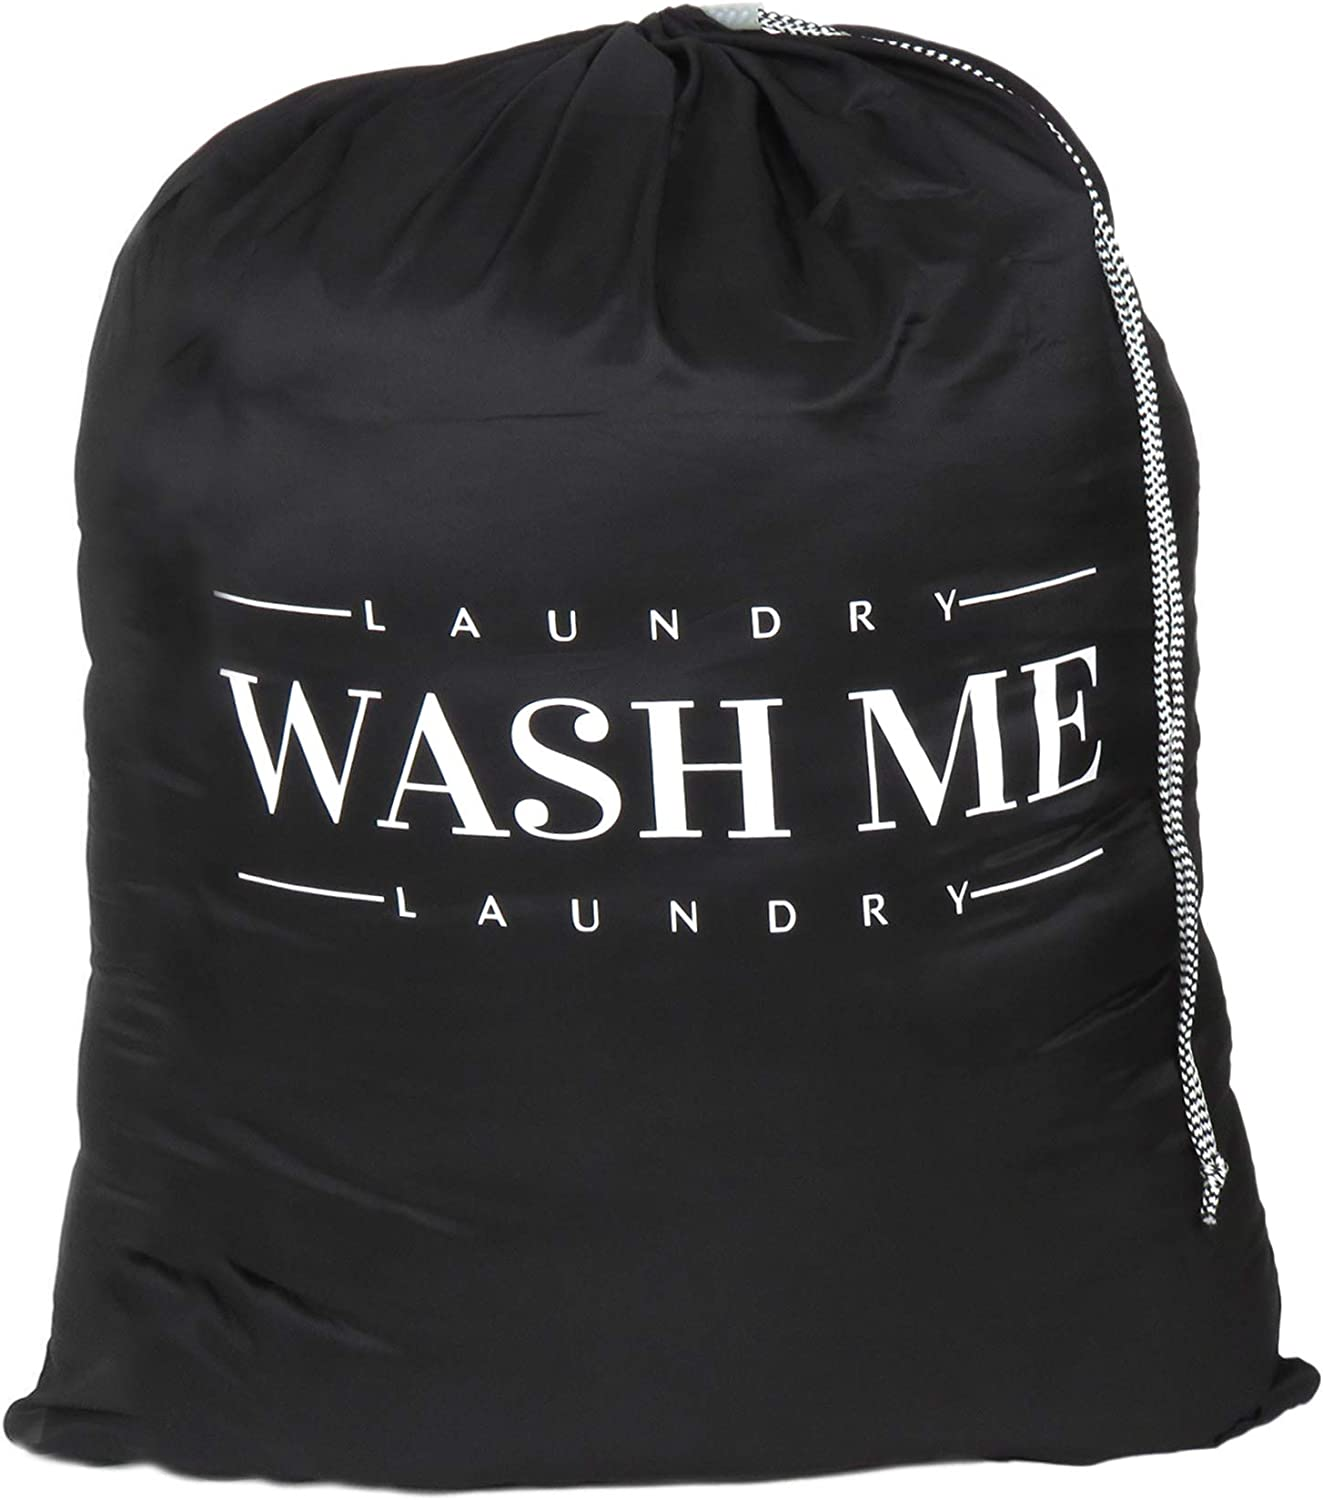 Oussum Travel Laundry Bag Dirty Laundry Bags Heavy Duty Polyester Laundry Bag Machine Washable Large Dirty Clothes Organizer with Backpack Drawstring (Black-Wash Me)